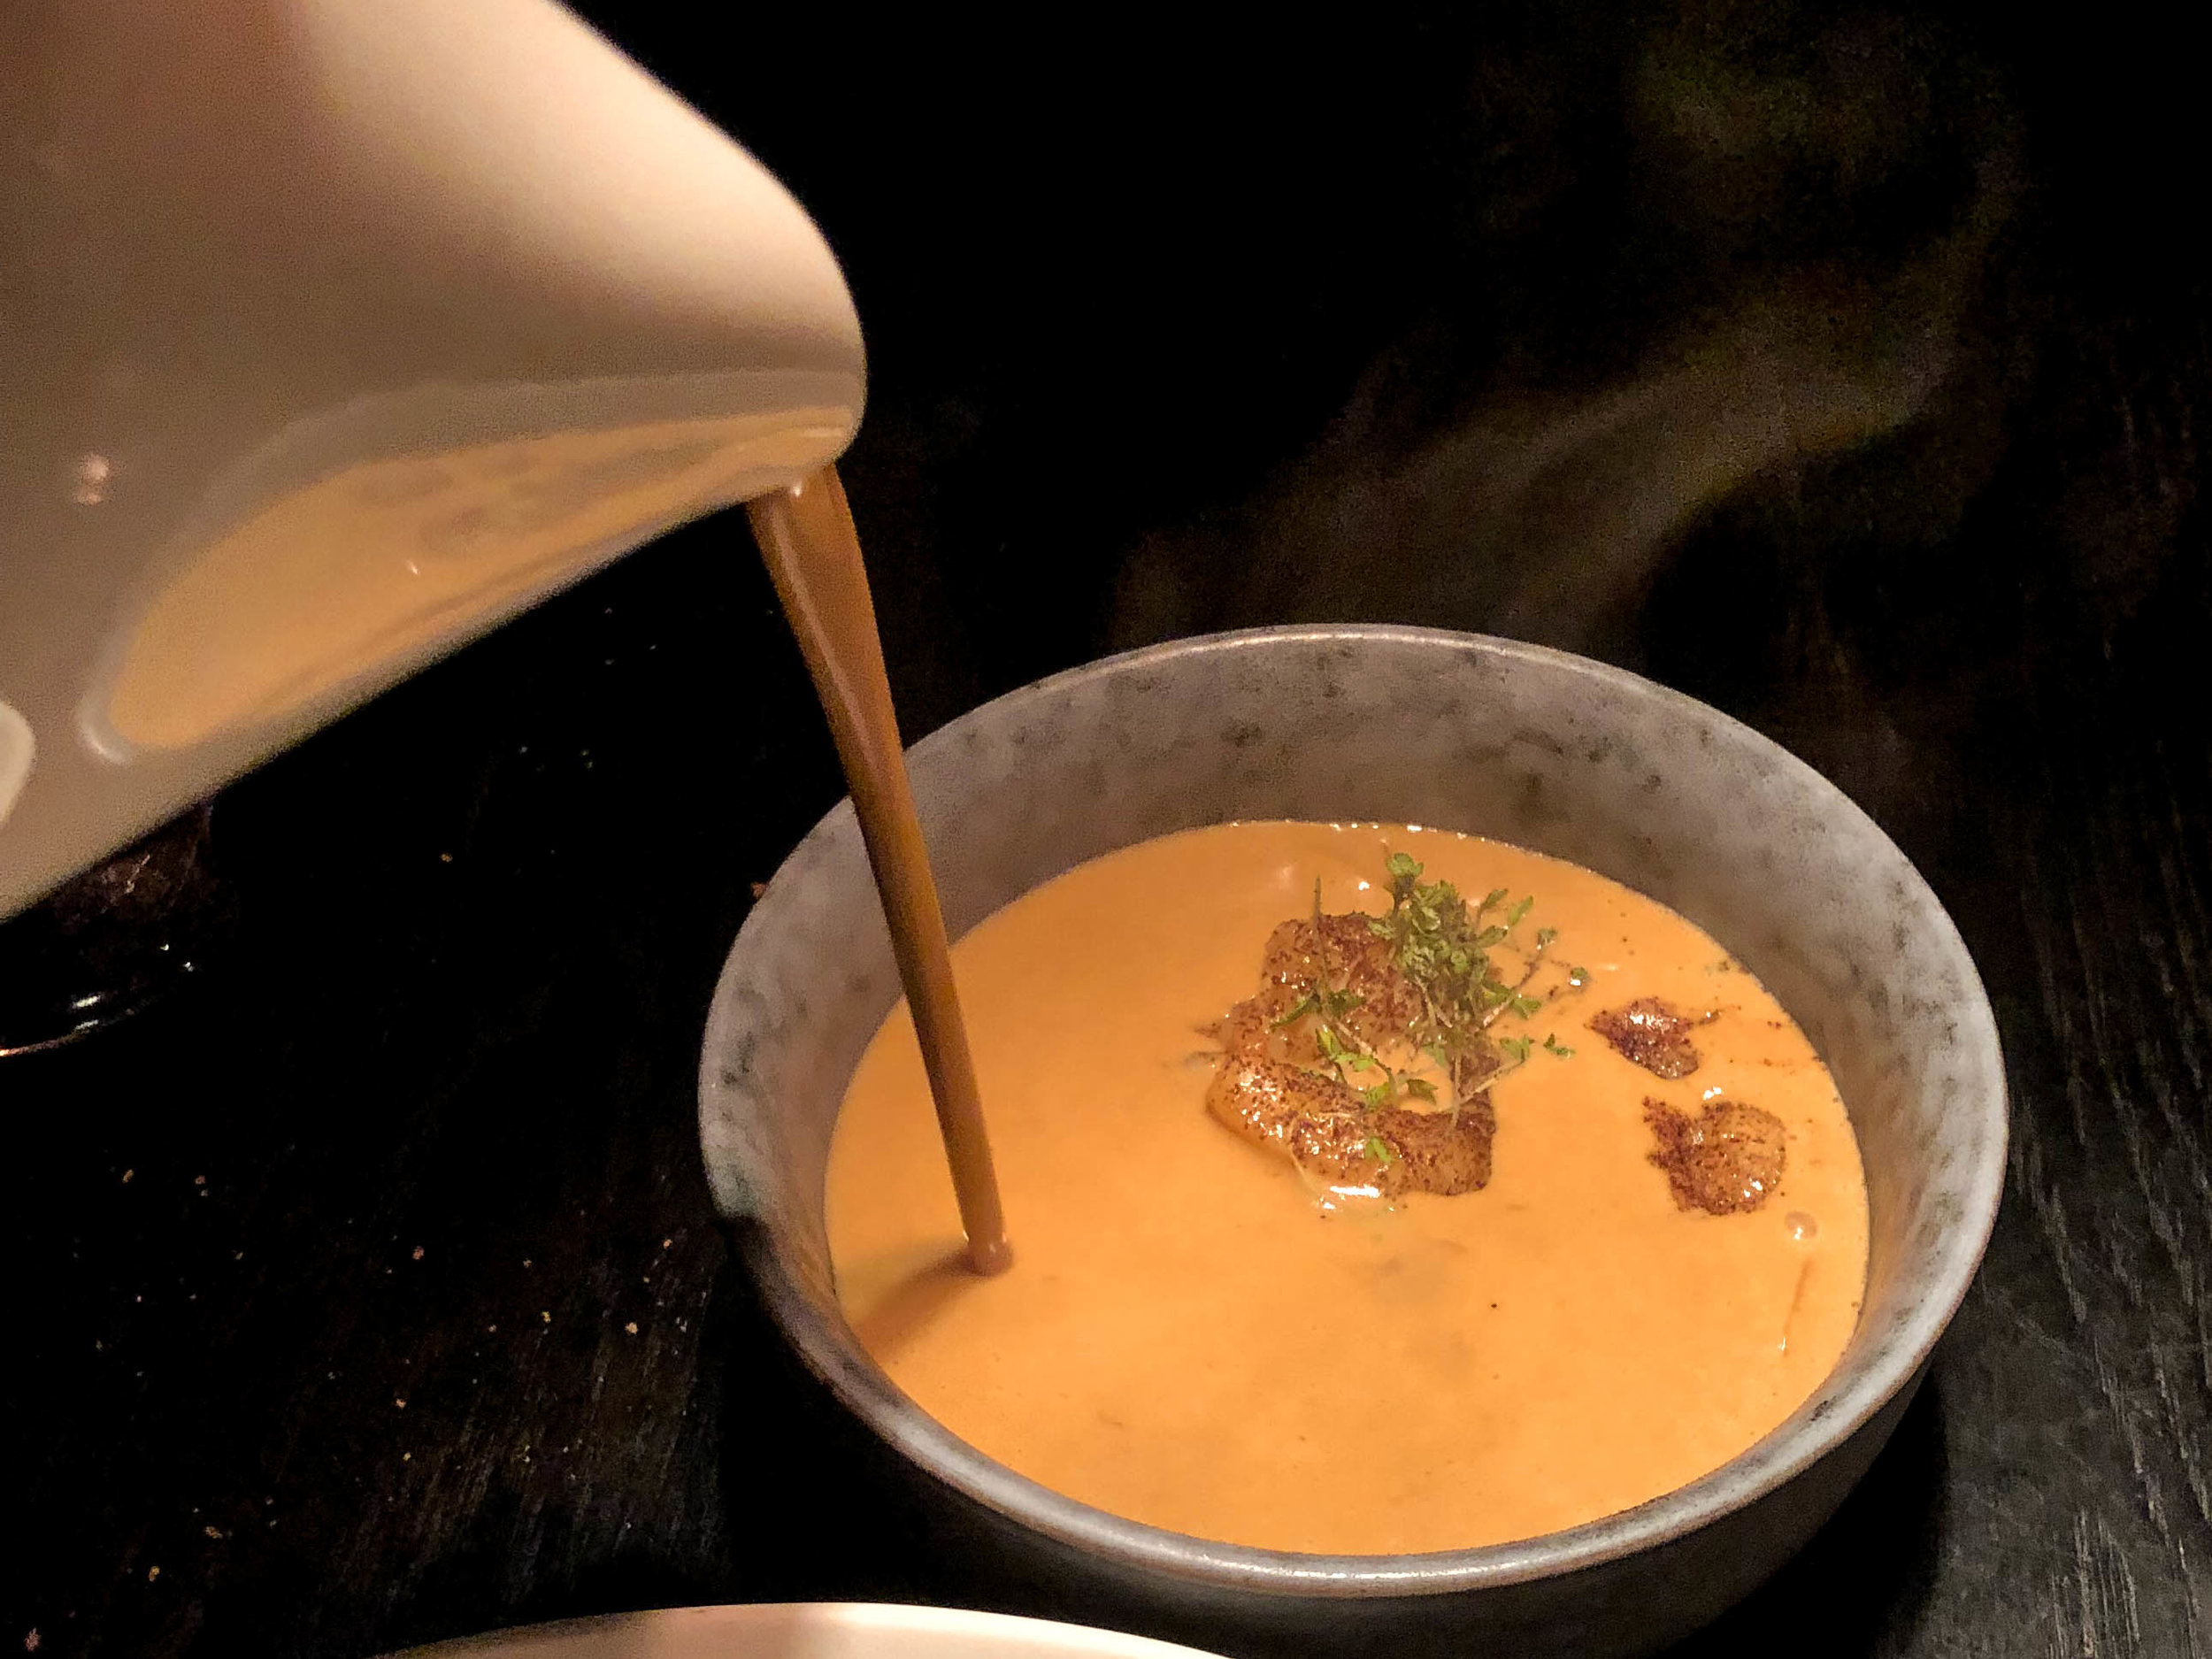 FIJI - COCONUT ~ boiled LOBSTER SOUP with TIGER PRAWN & SCALLOPS, coconut jelly, roasted coconut & Icelandic seaweeds